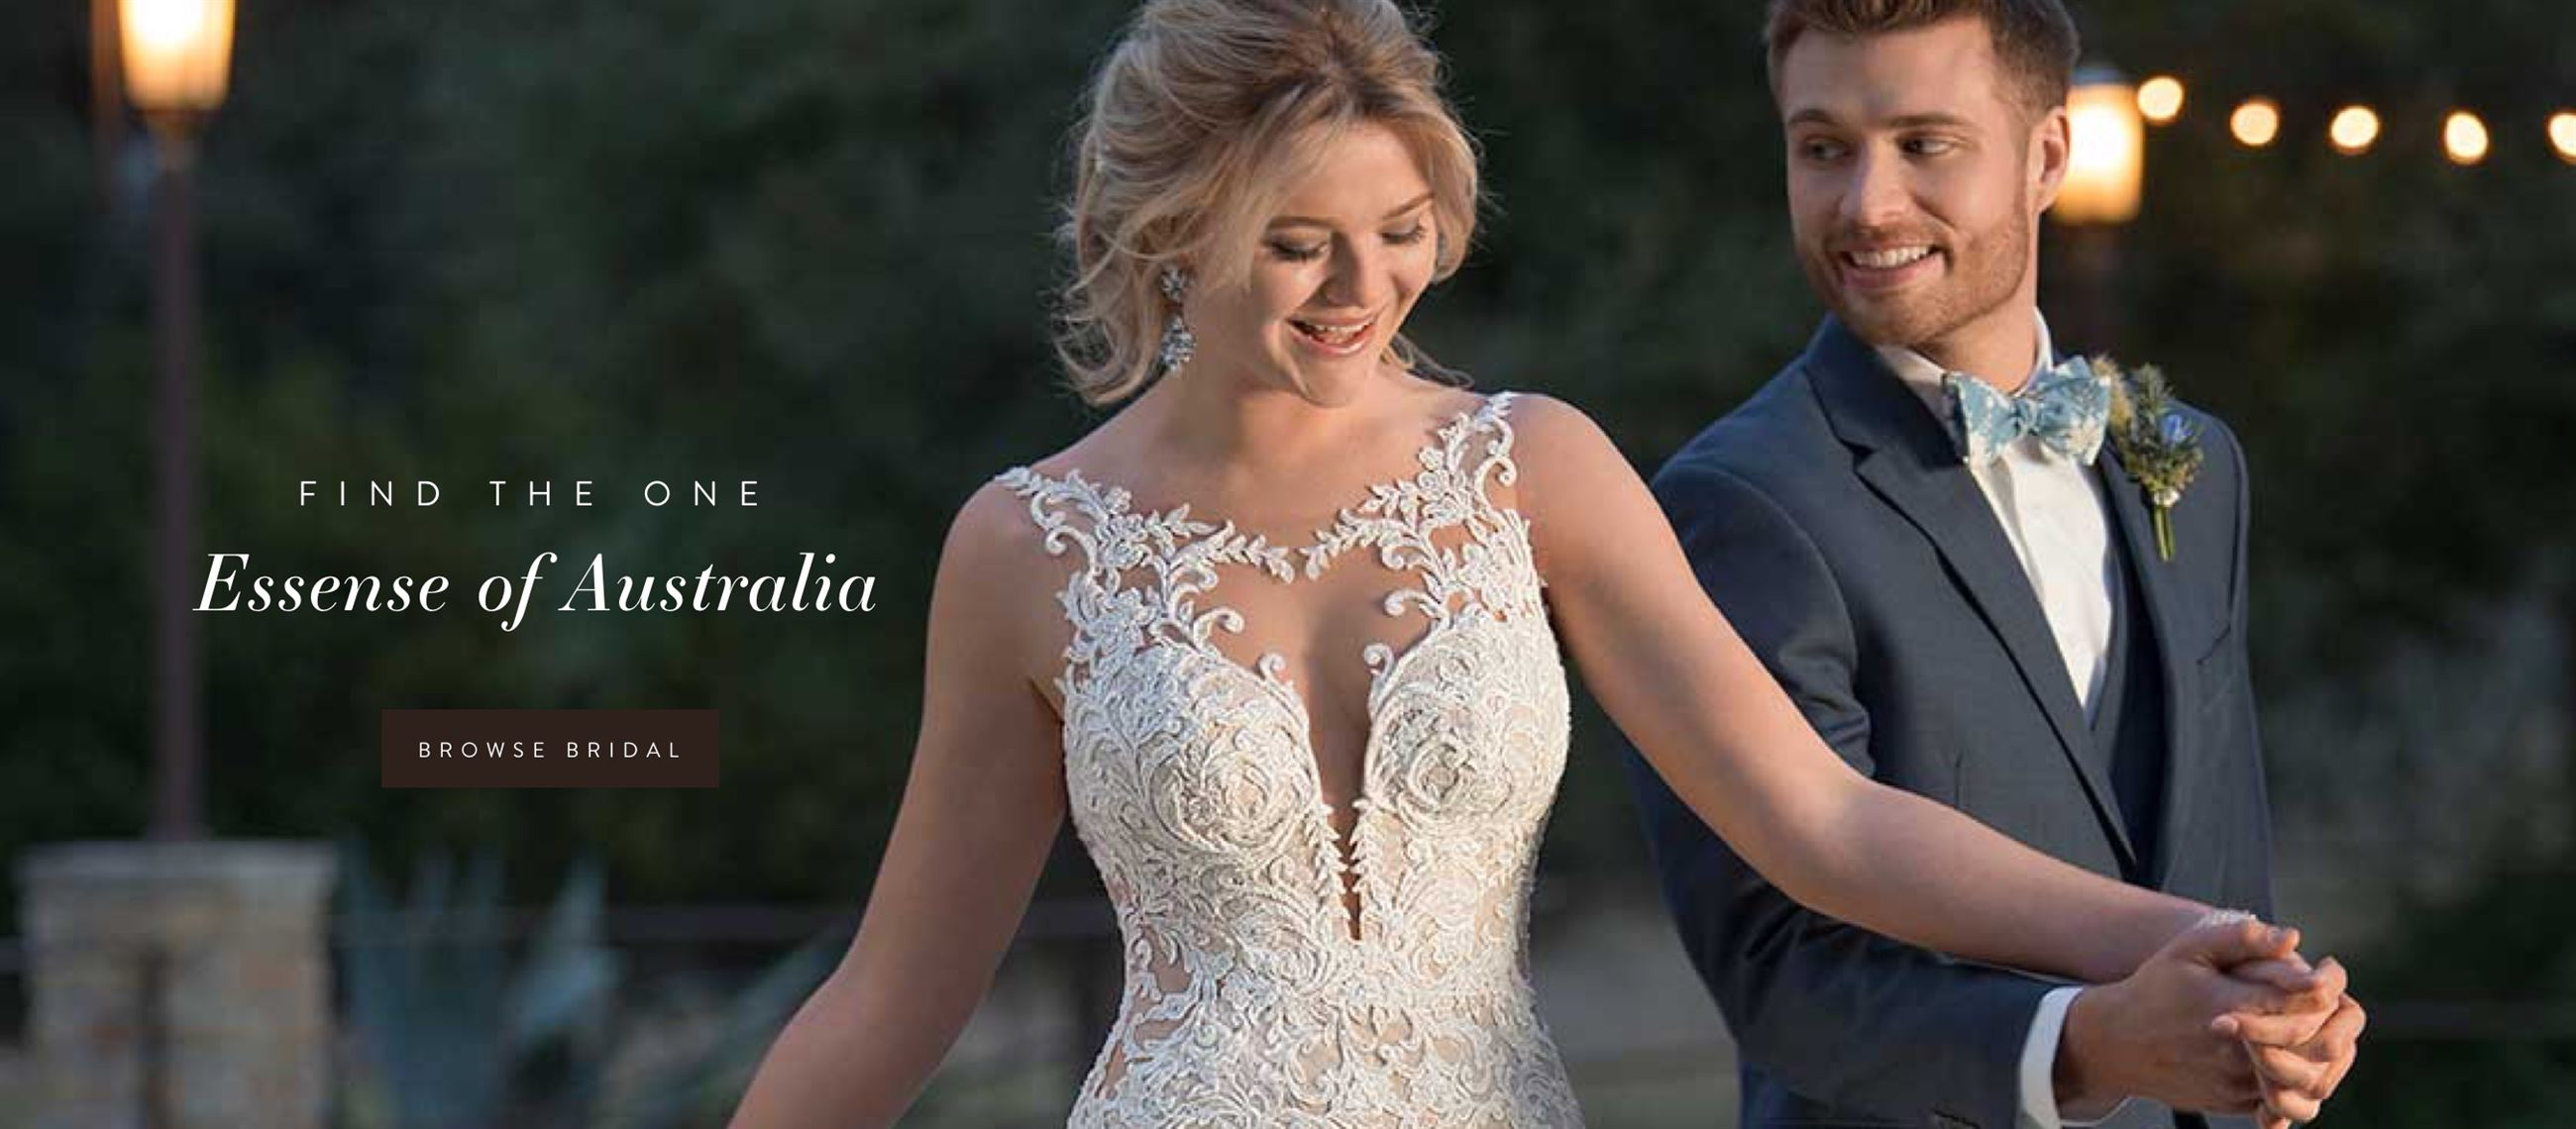 essense of australia wedding dresses at something new boutique in colorado springs